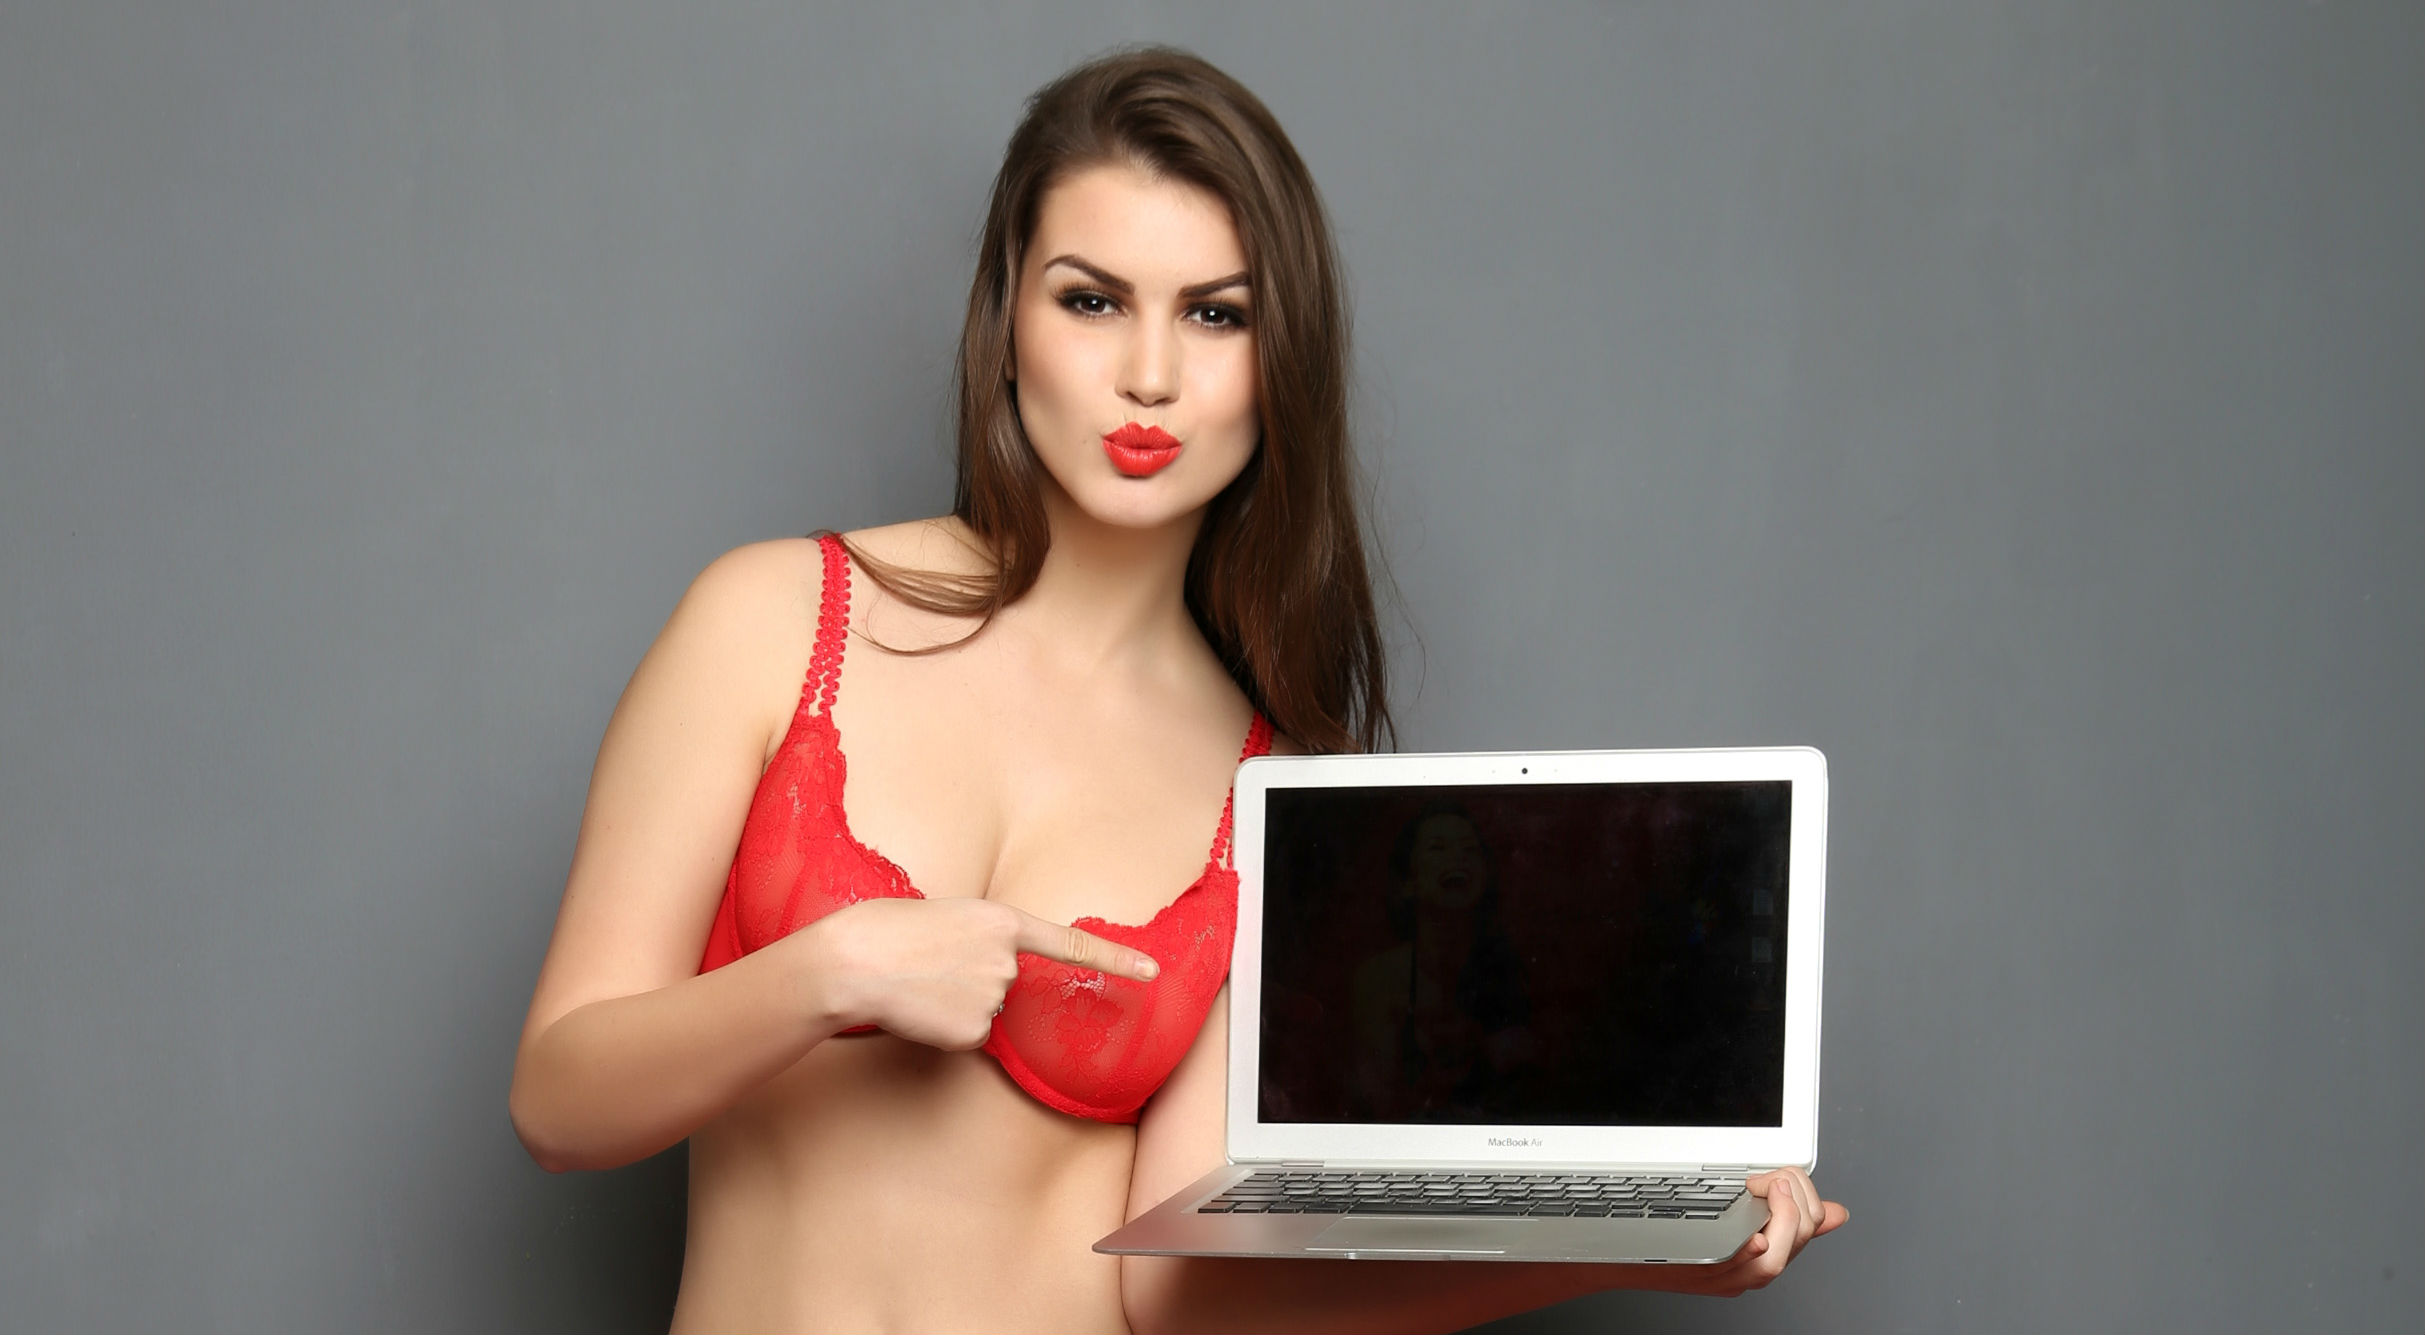 PrettySecrets is a young, fun and sexy online lingerie brand that believes lingerie needn't be boring. Buy online Bra, Panty, Lingerie, Night dress, Swimwear at discounted price.